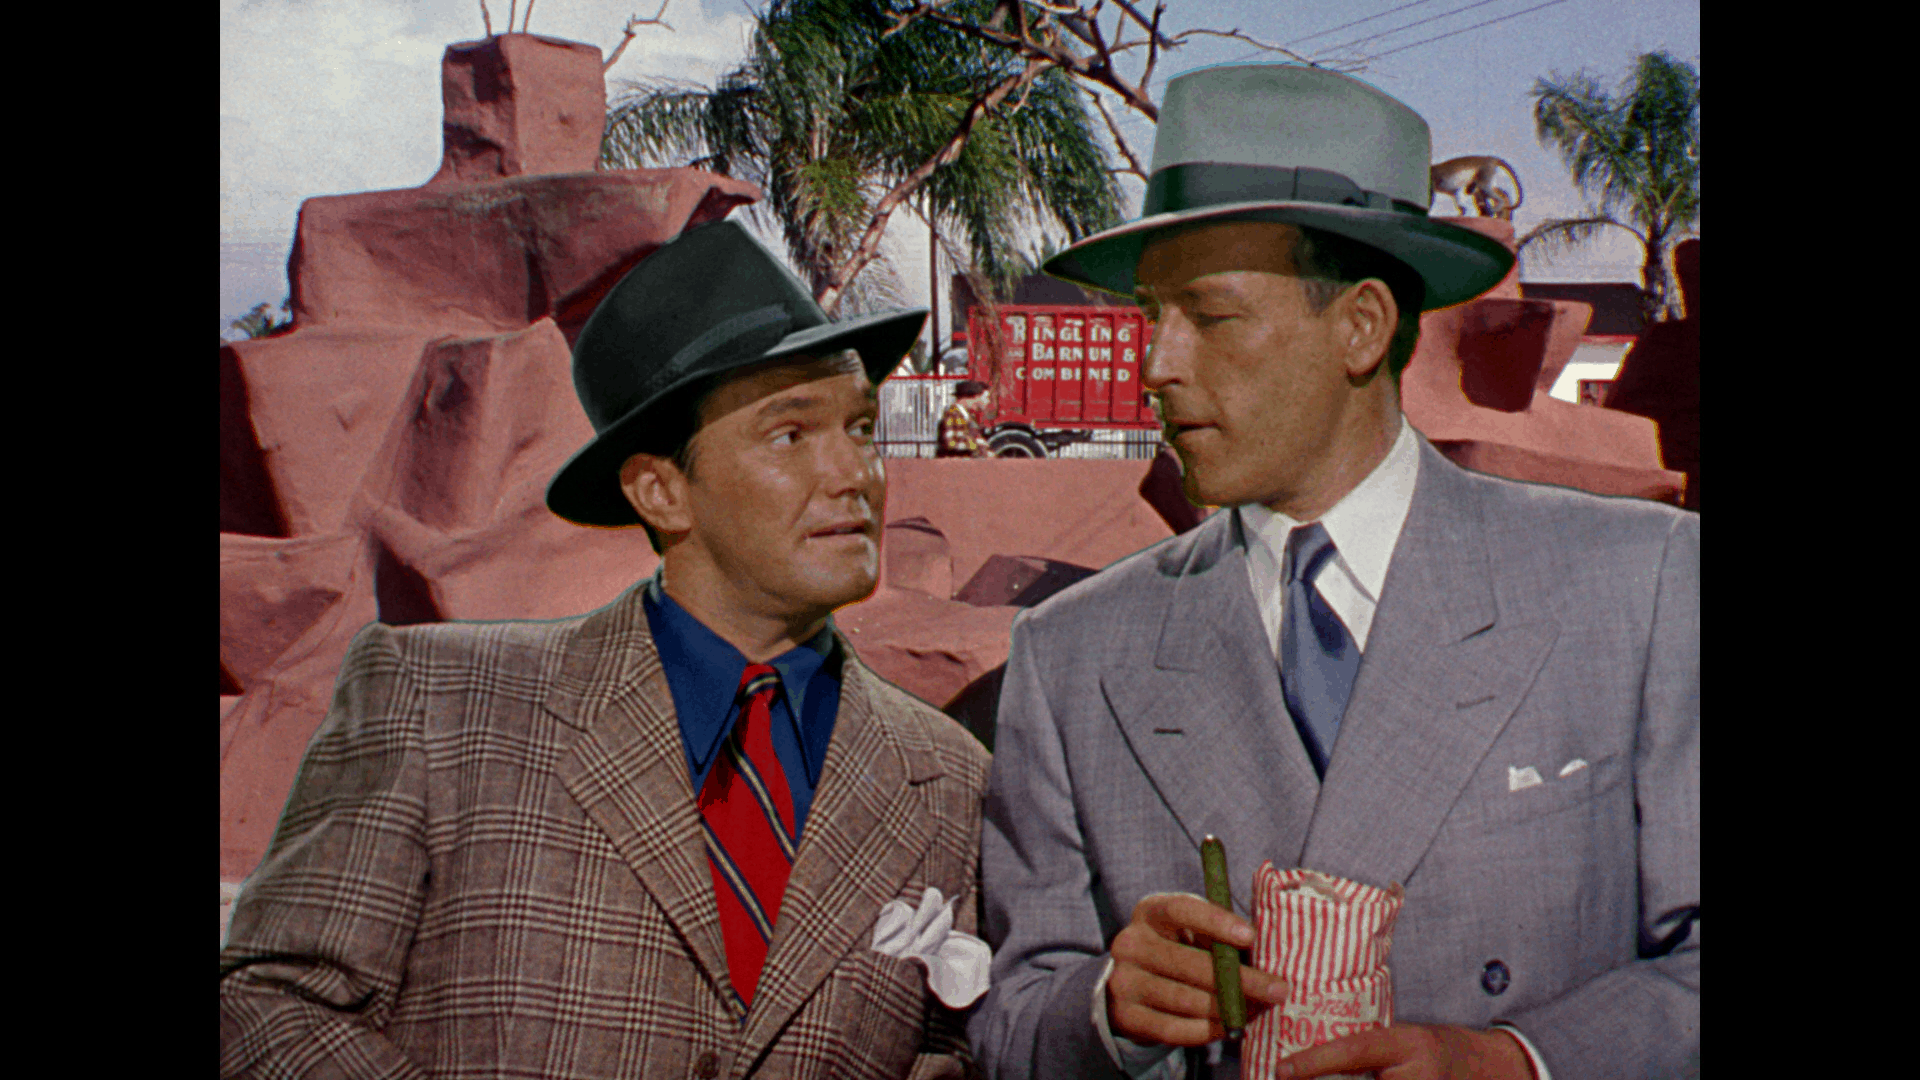 The Greatest Show on Earth (1952) [Paramount Presents Blu-ray review] 5